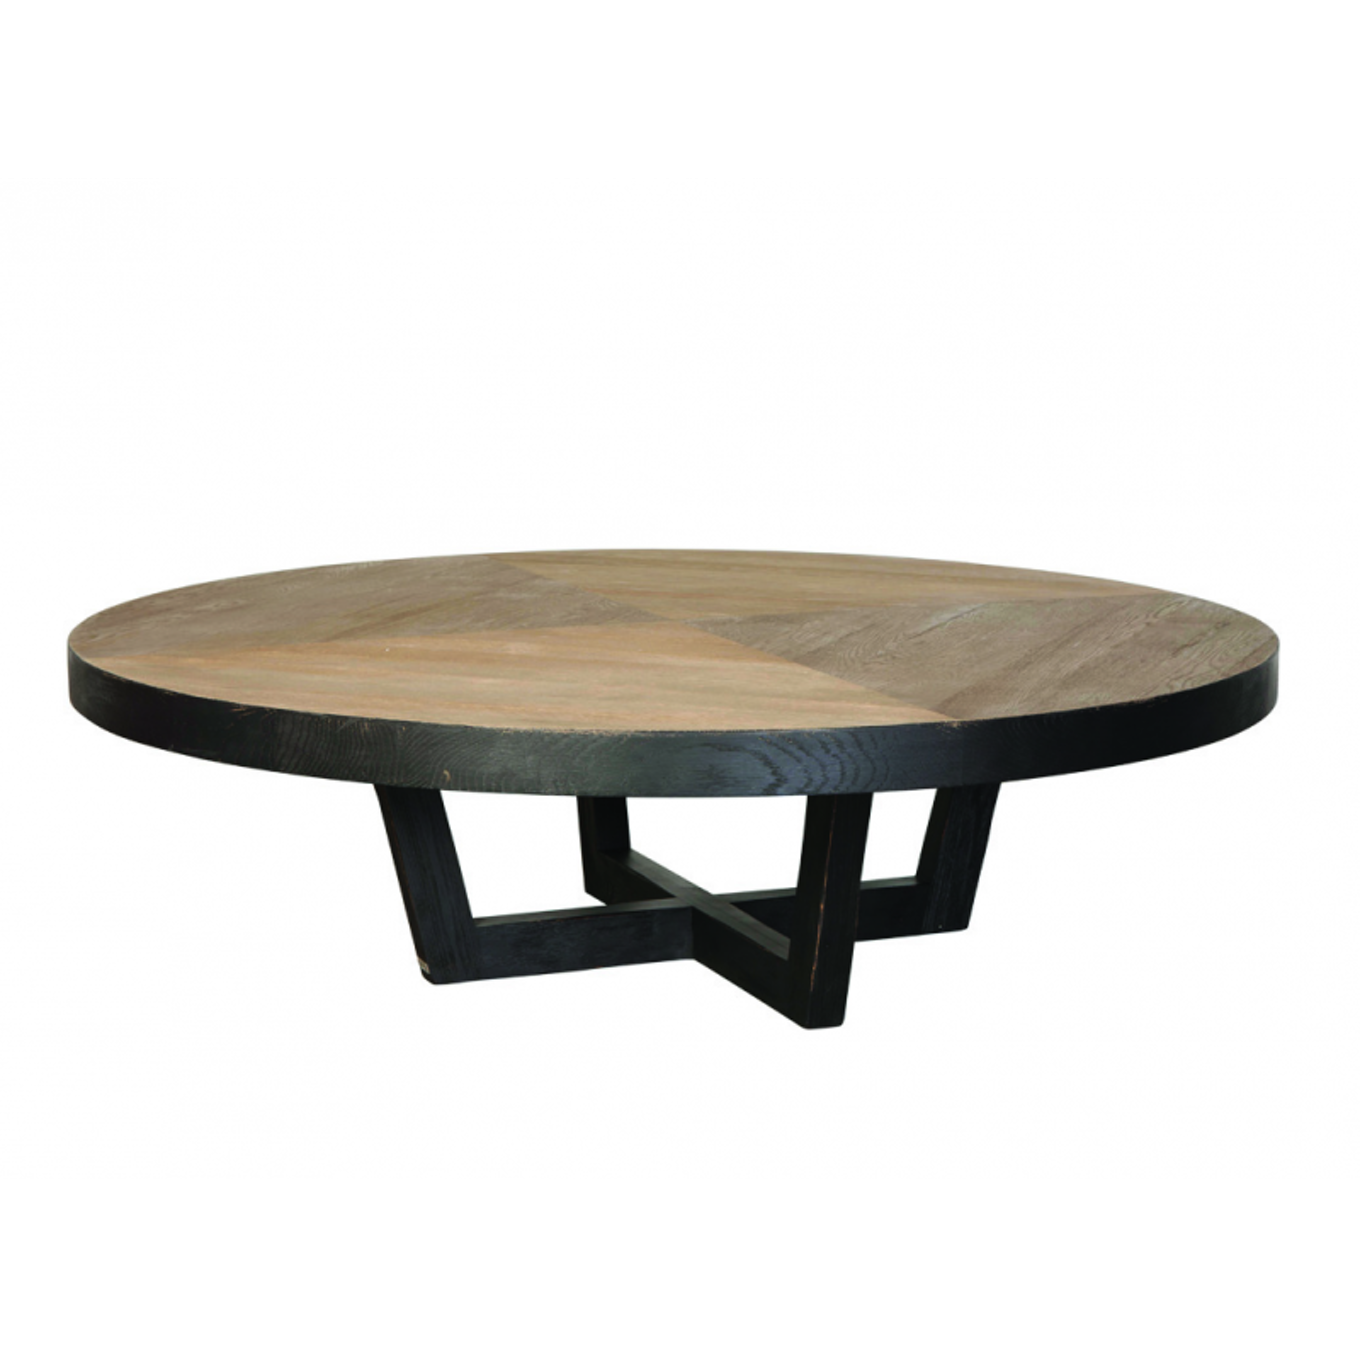 Table basse en verre ikea gallery of table basse ikea plateau de verre with table basse en - Plateau a roulette ikea ...